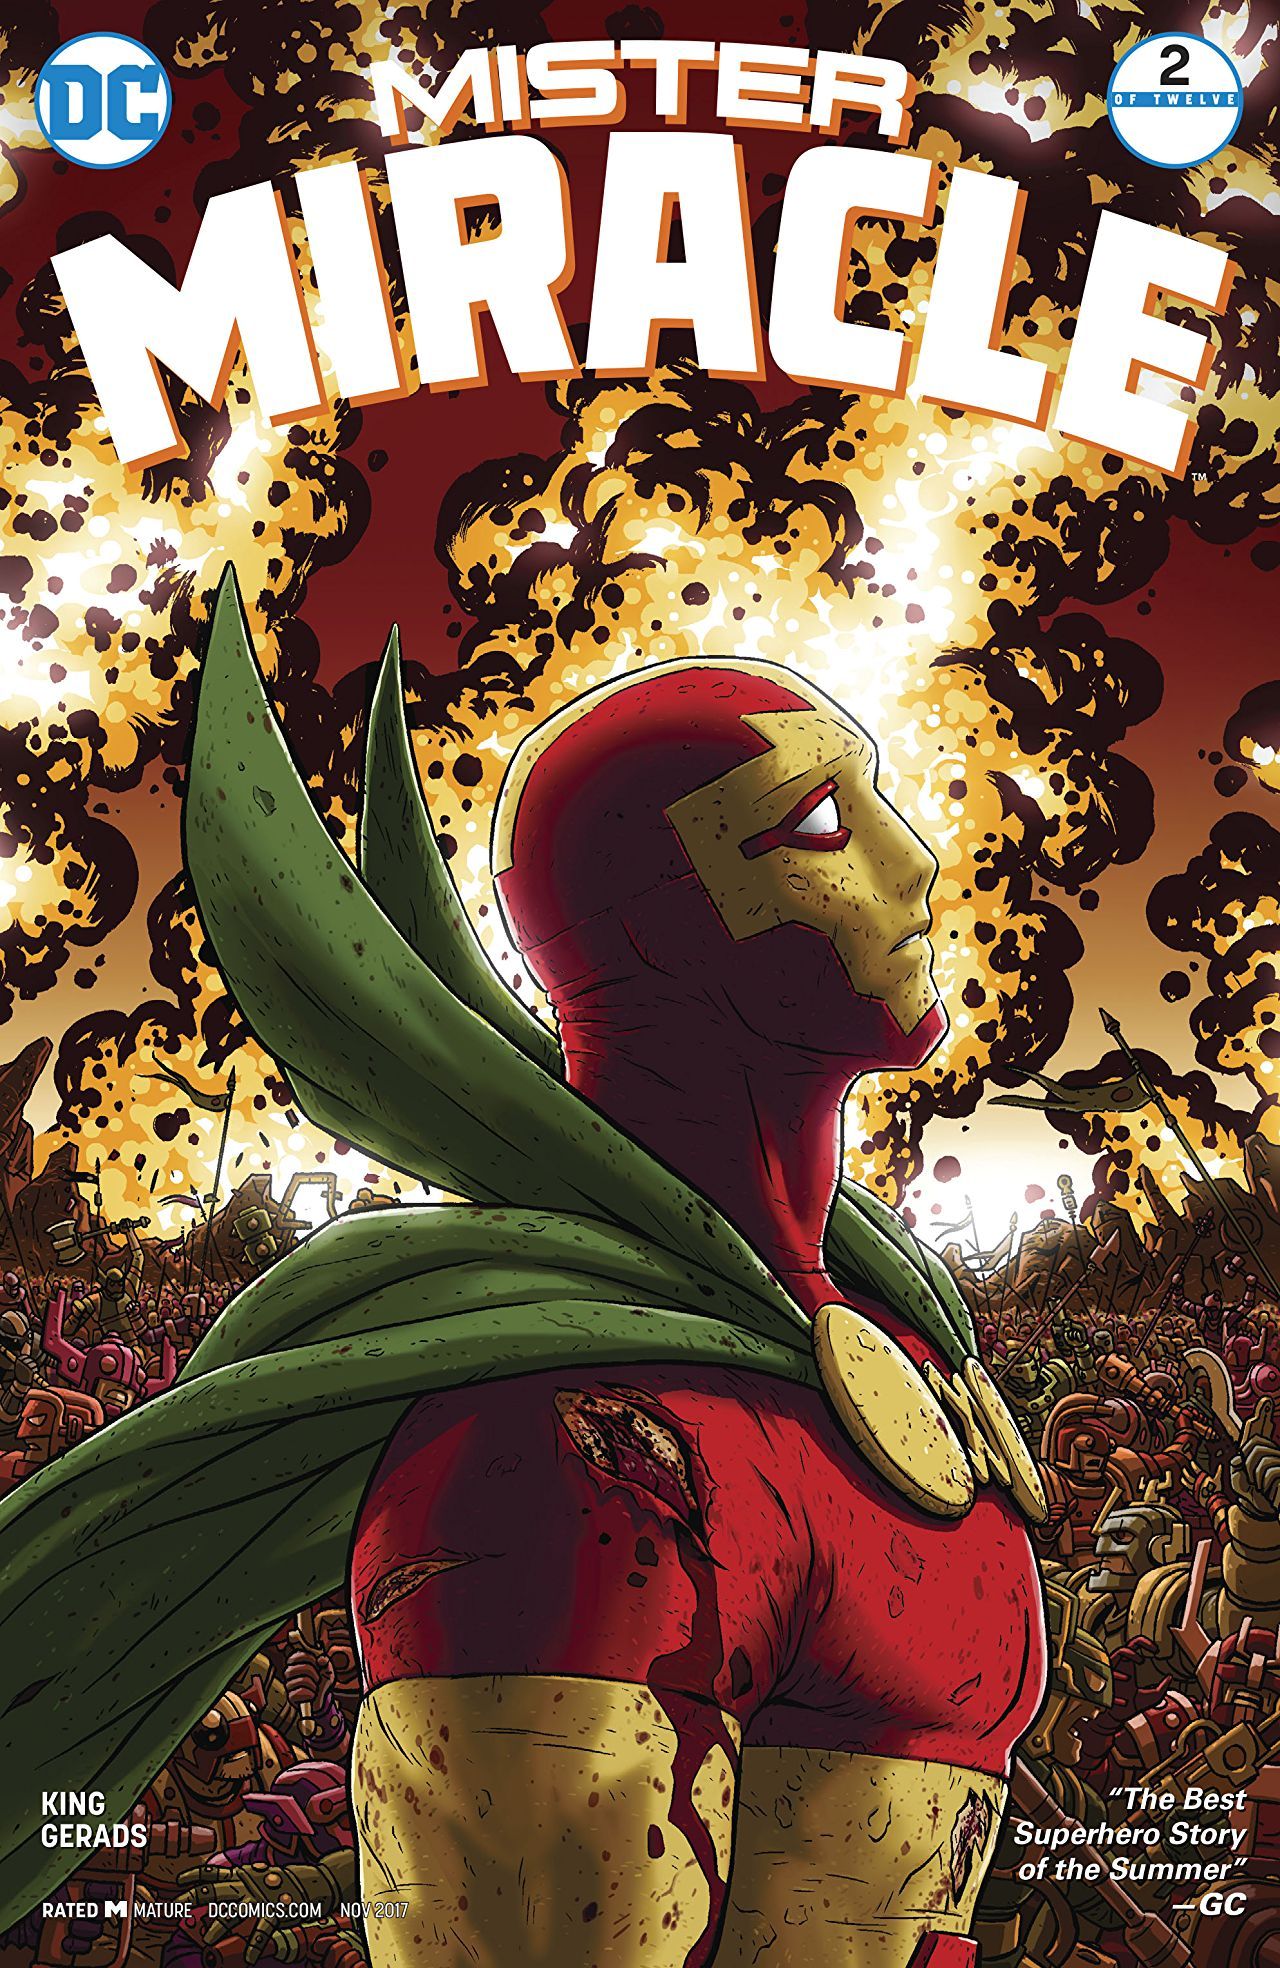 Mister Miracle #2 review: Escaping the sophomore slump